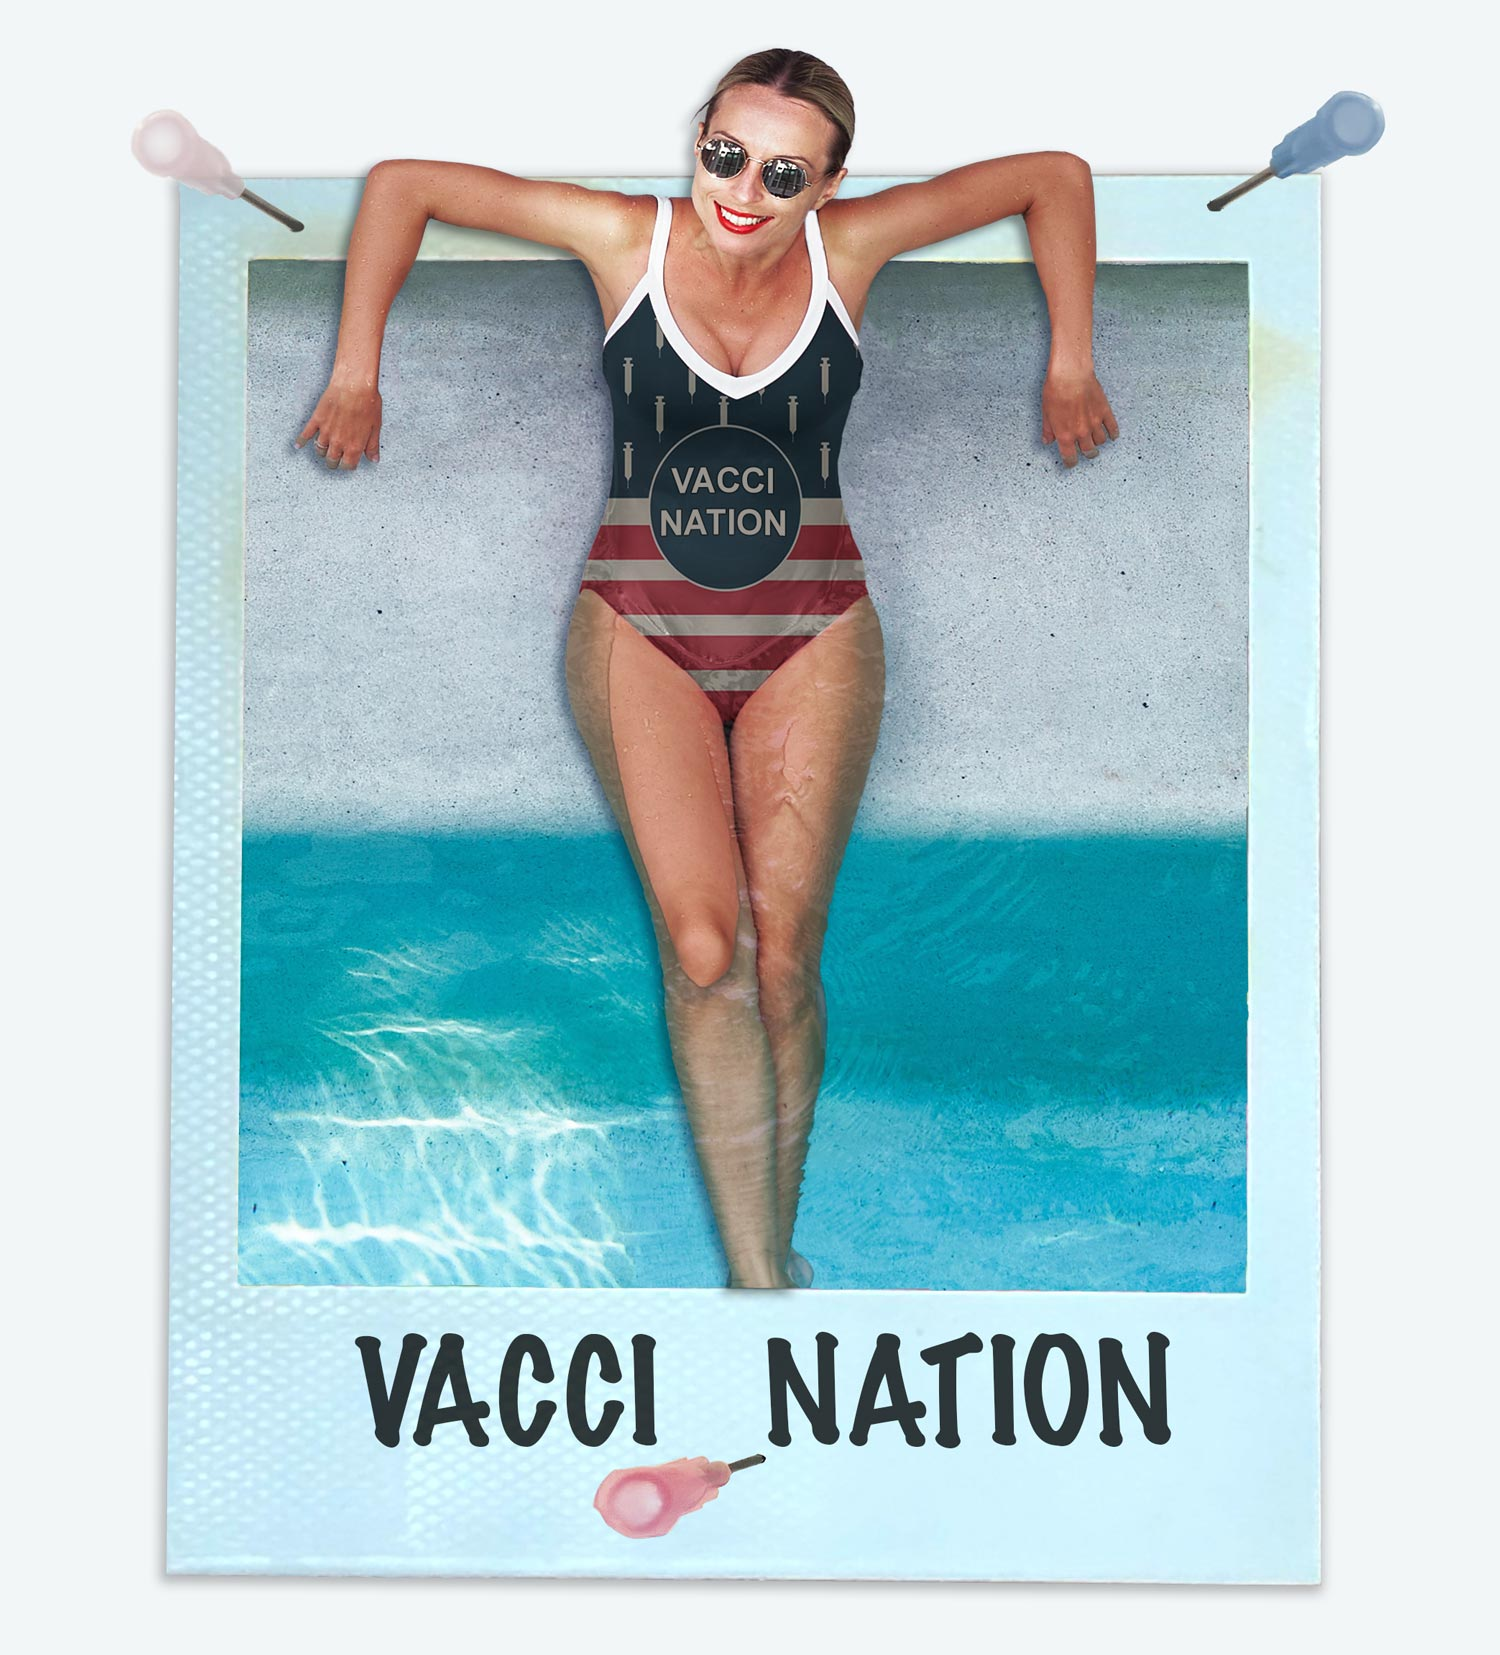 Women in a one PPiEce bikini. The style is called Vacci Nation and is America-themed with needles instead of stars.